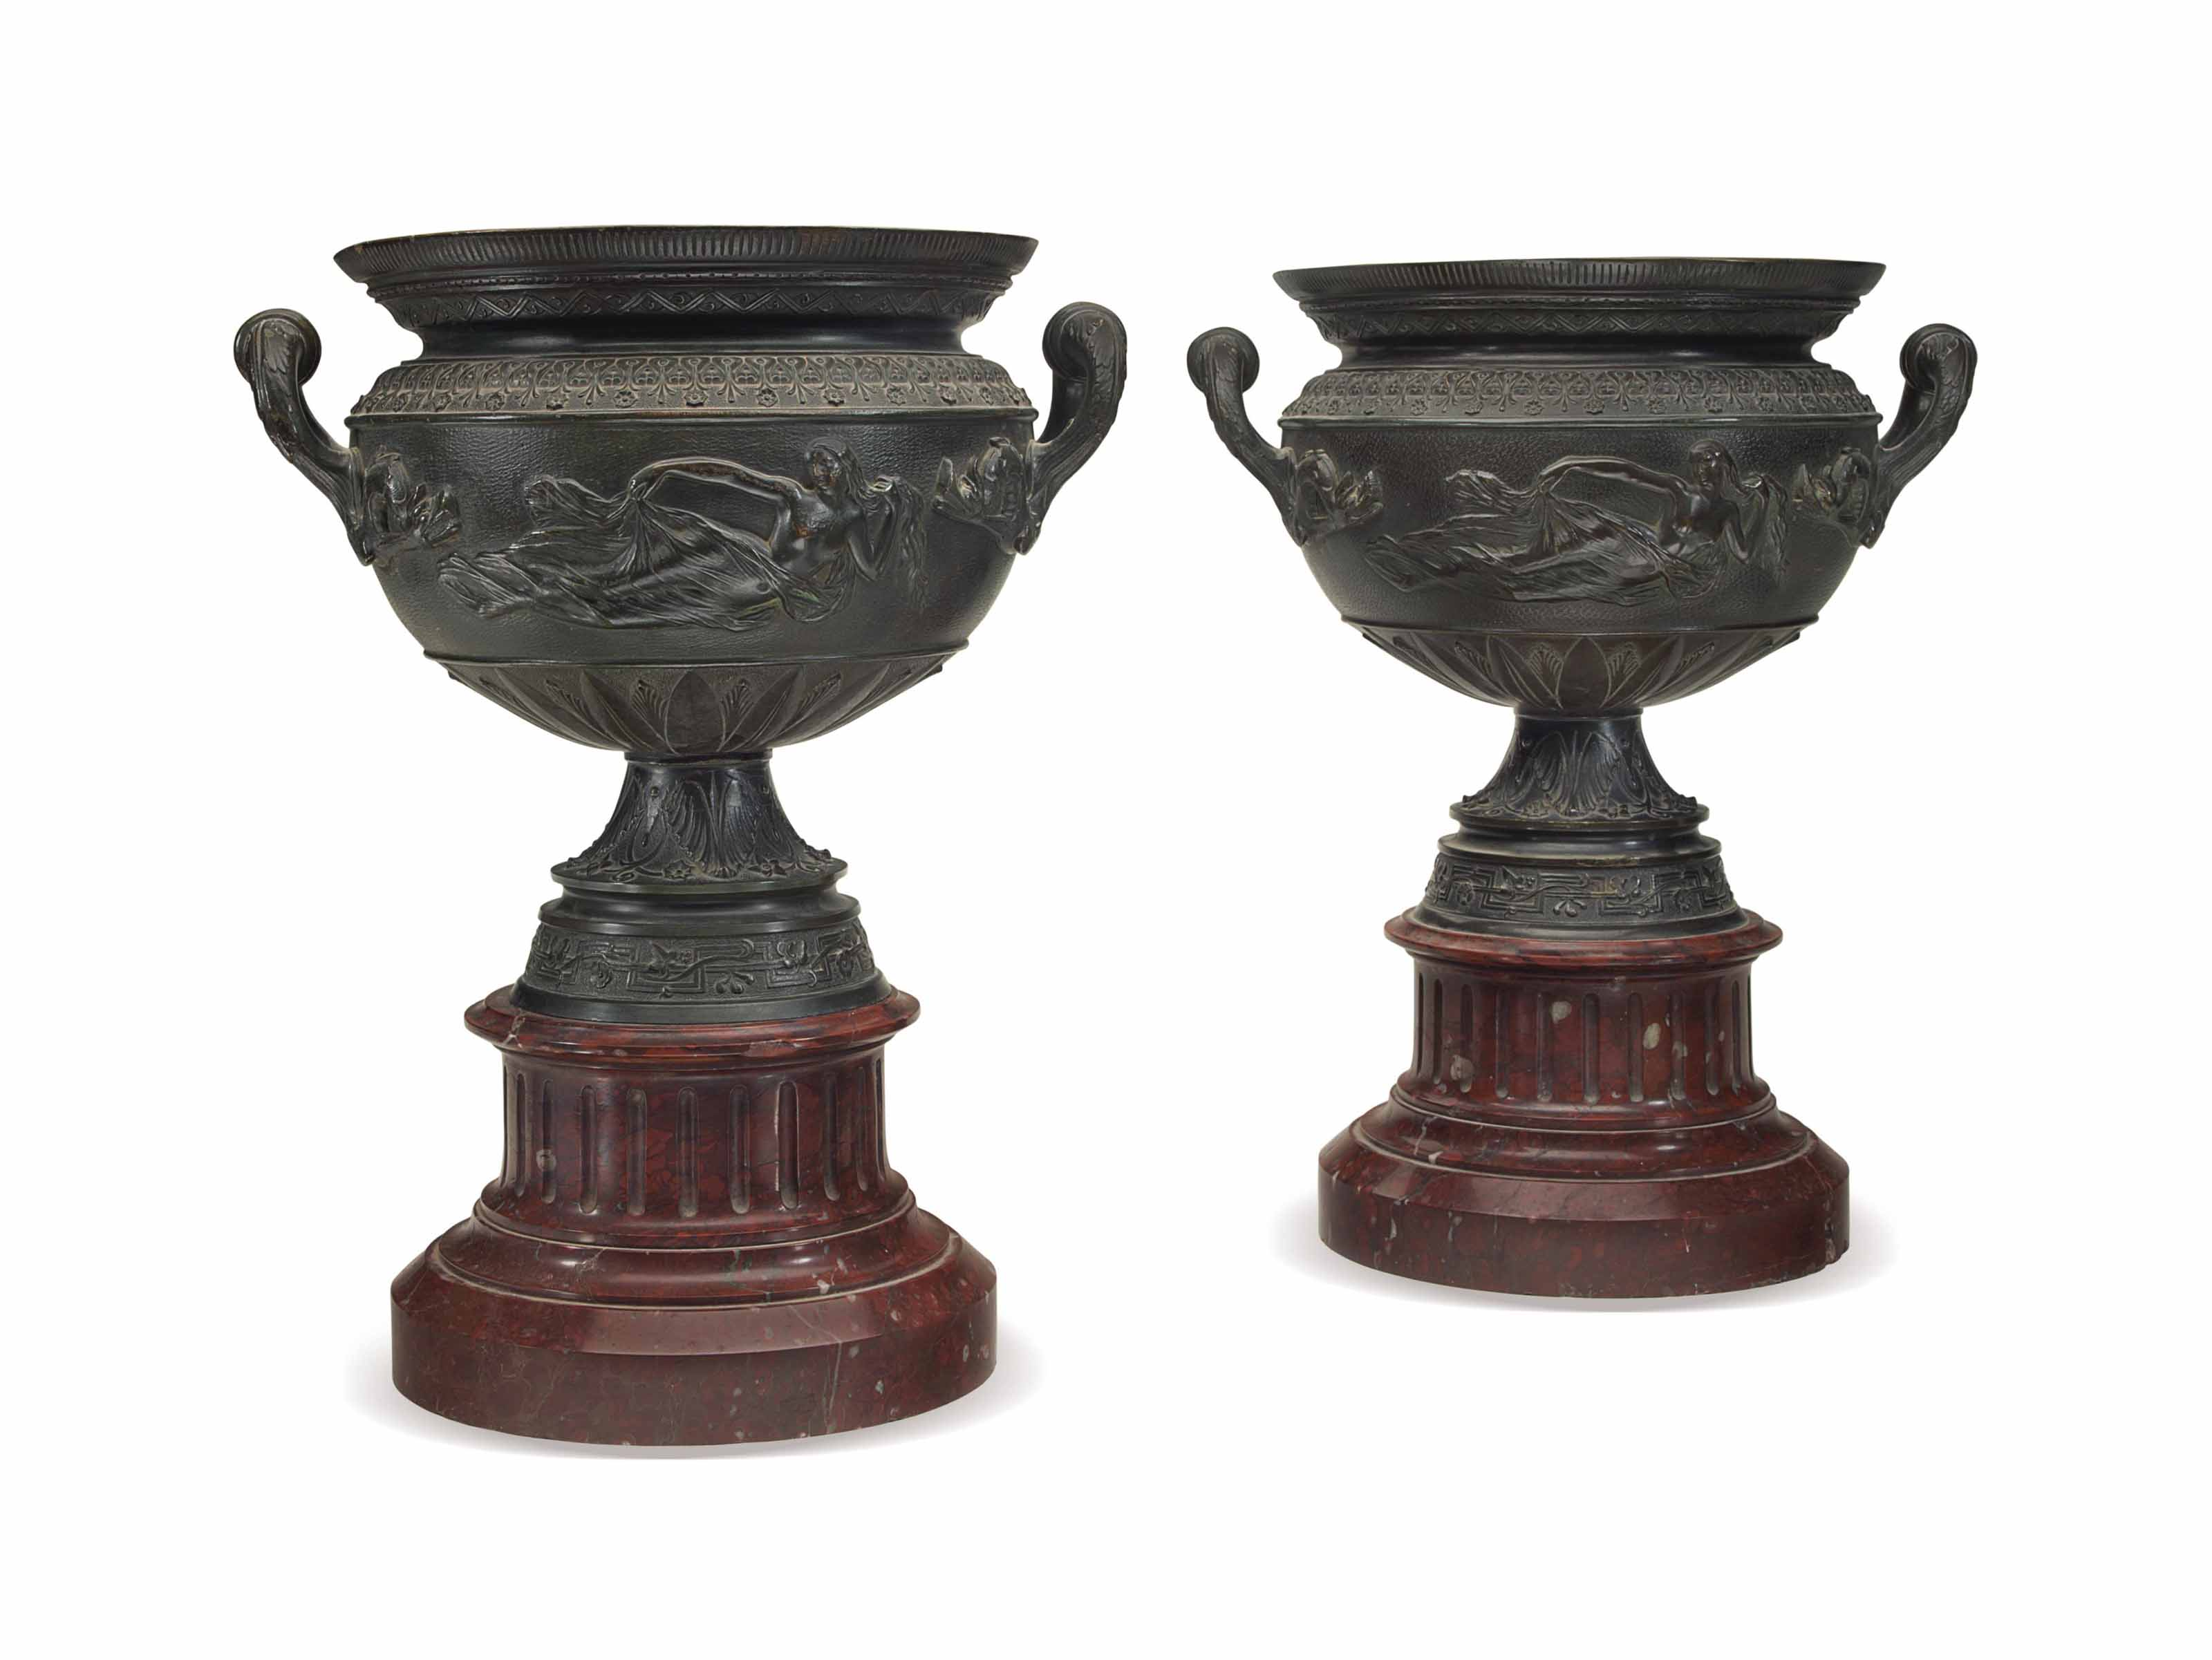 A PAIR OF PATINATED-BRONZE URN